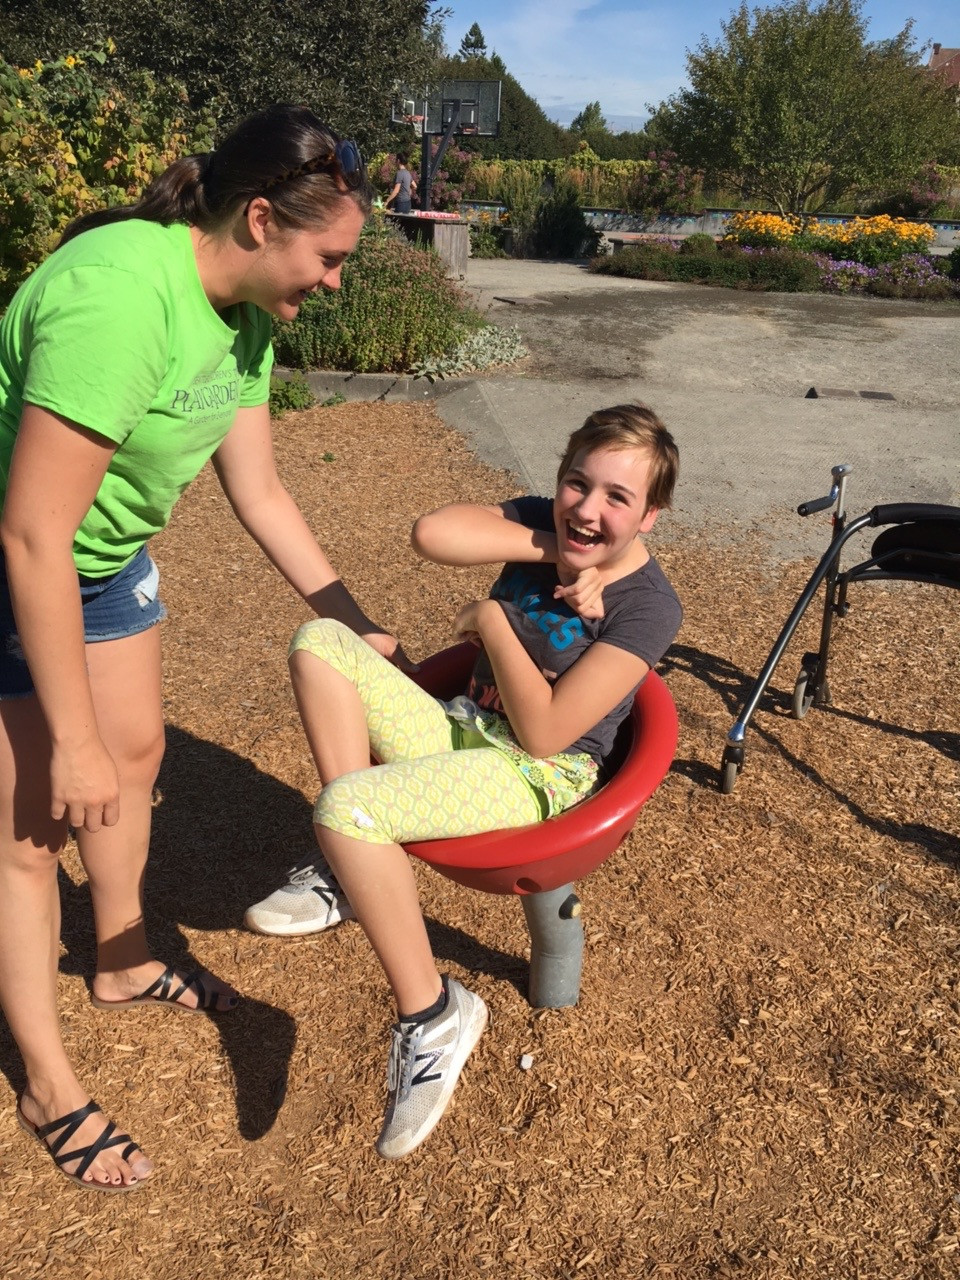 A teen plays in a playground spinner with the help of a summer camp counselor